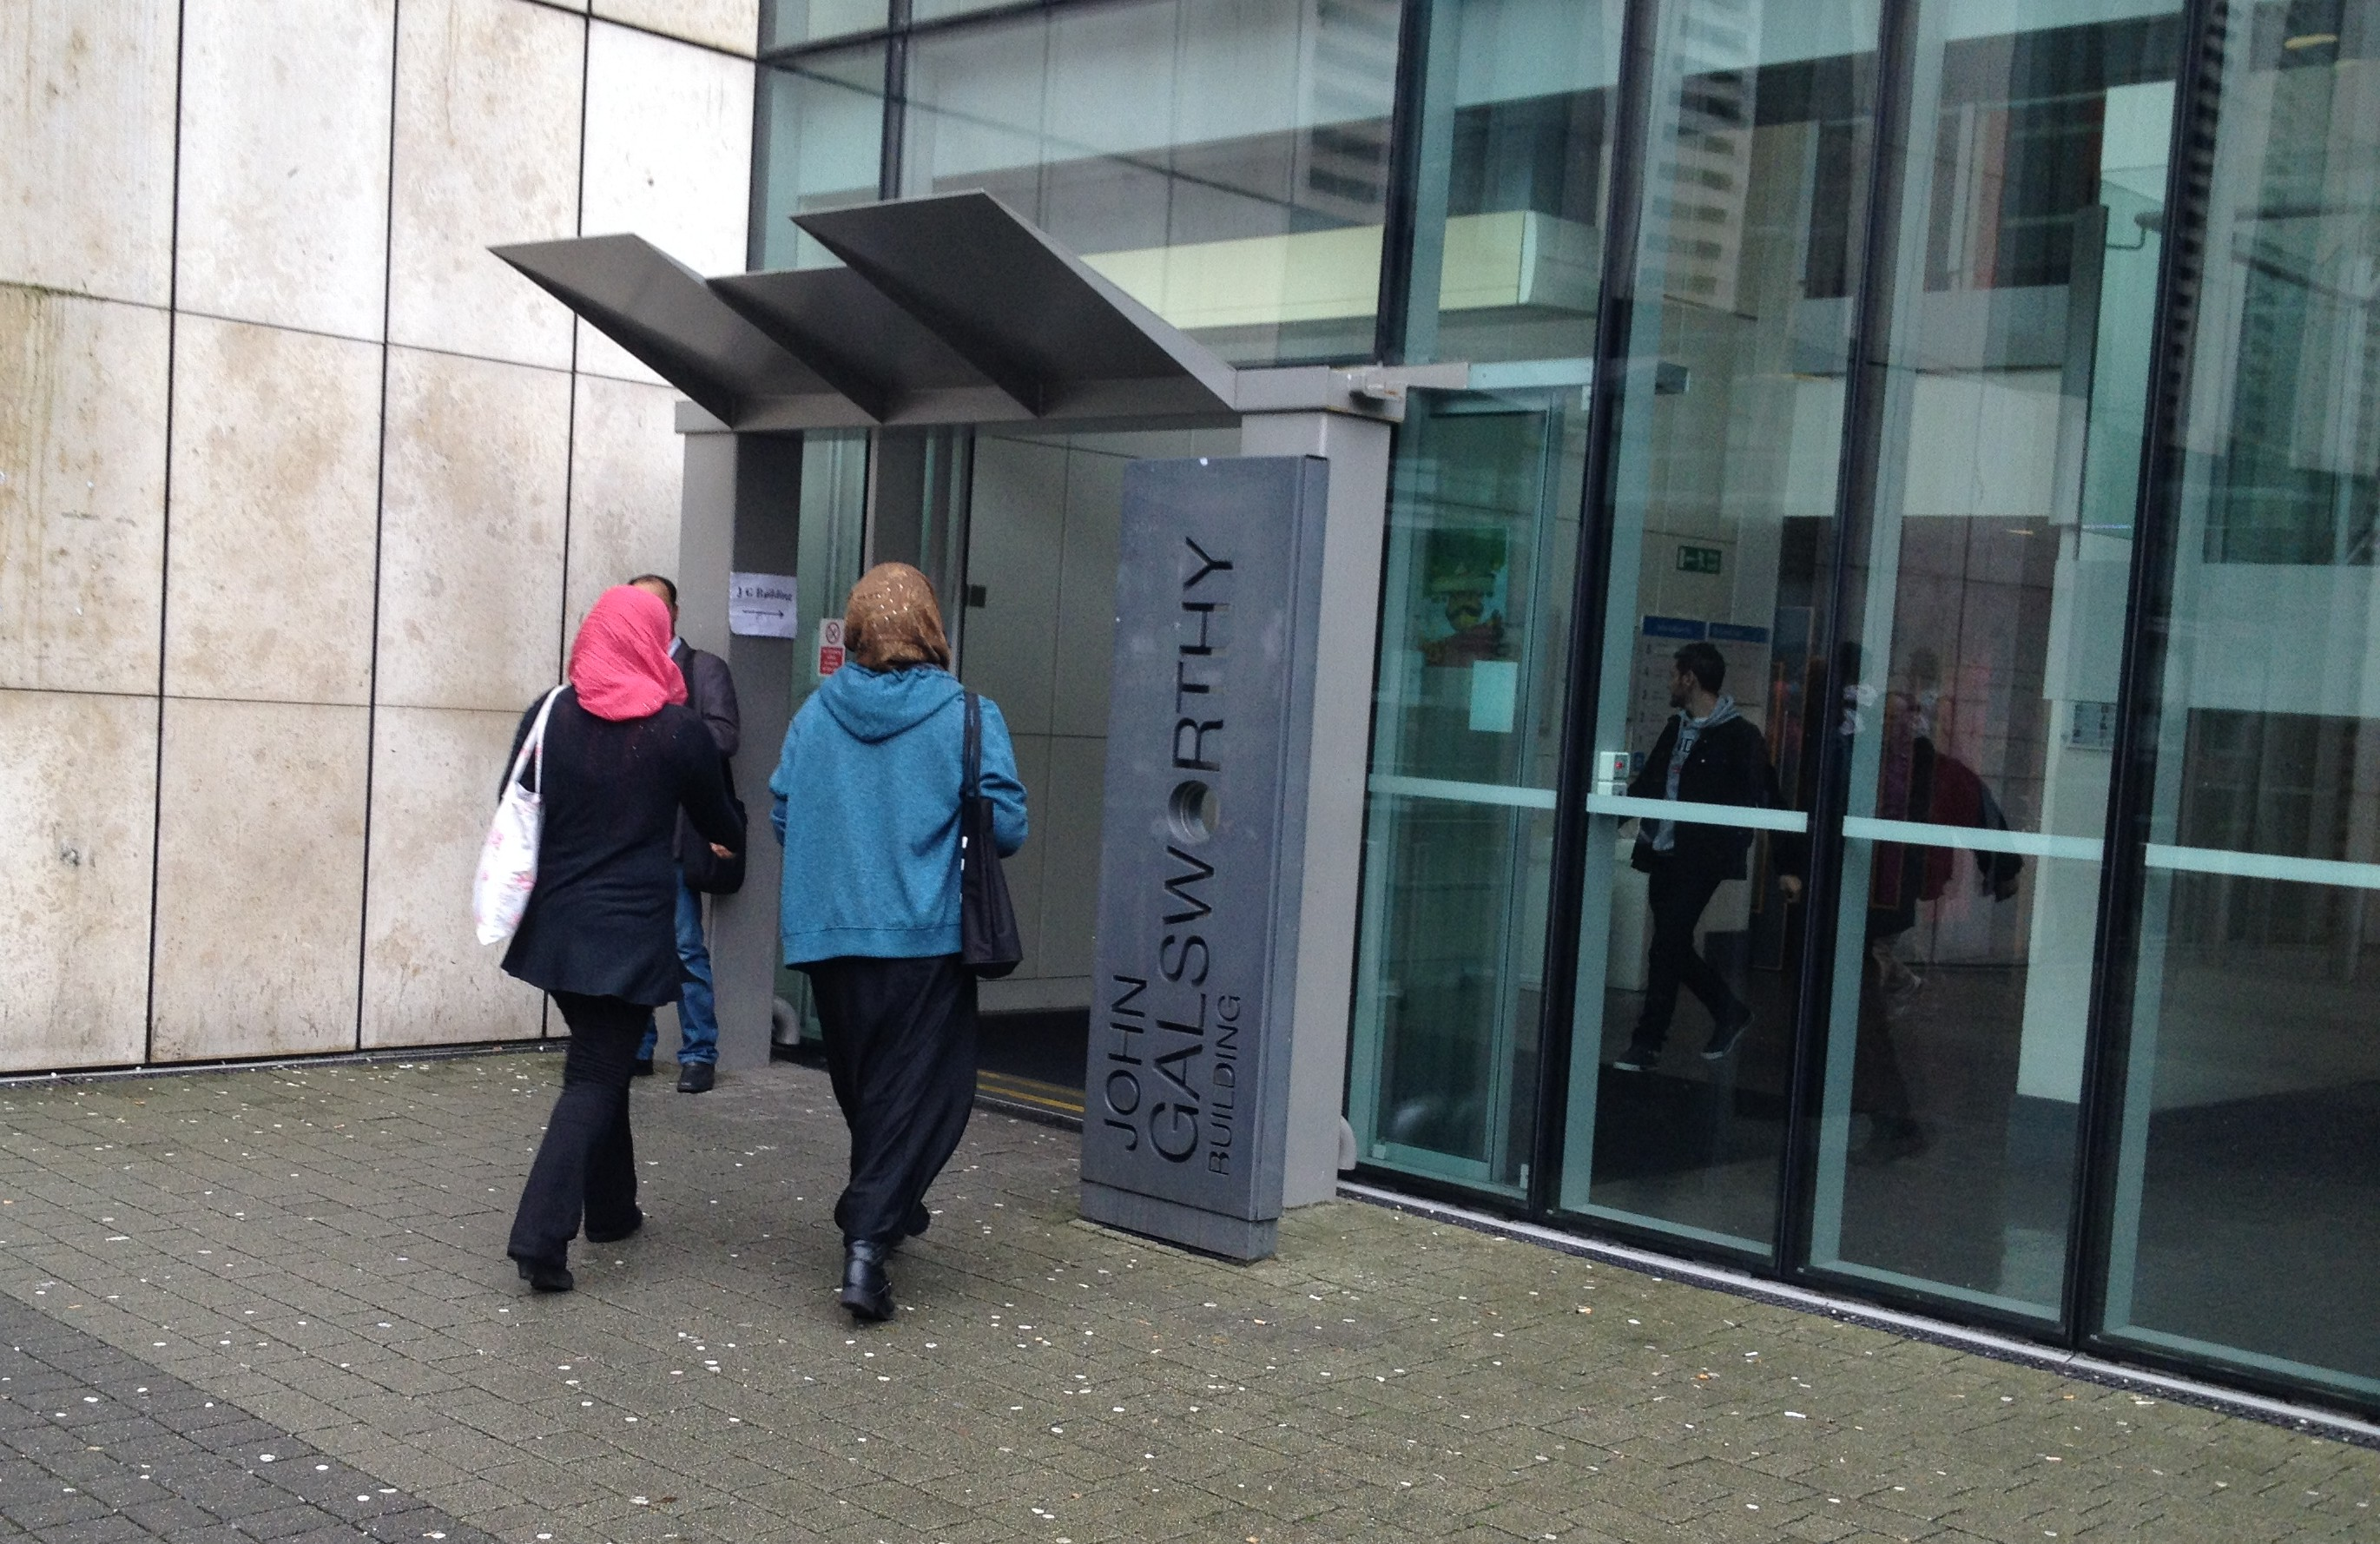 Students at Penrhyn Road Campus